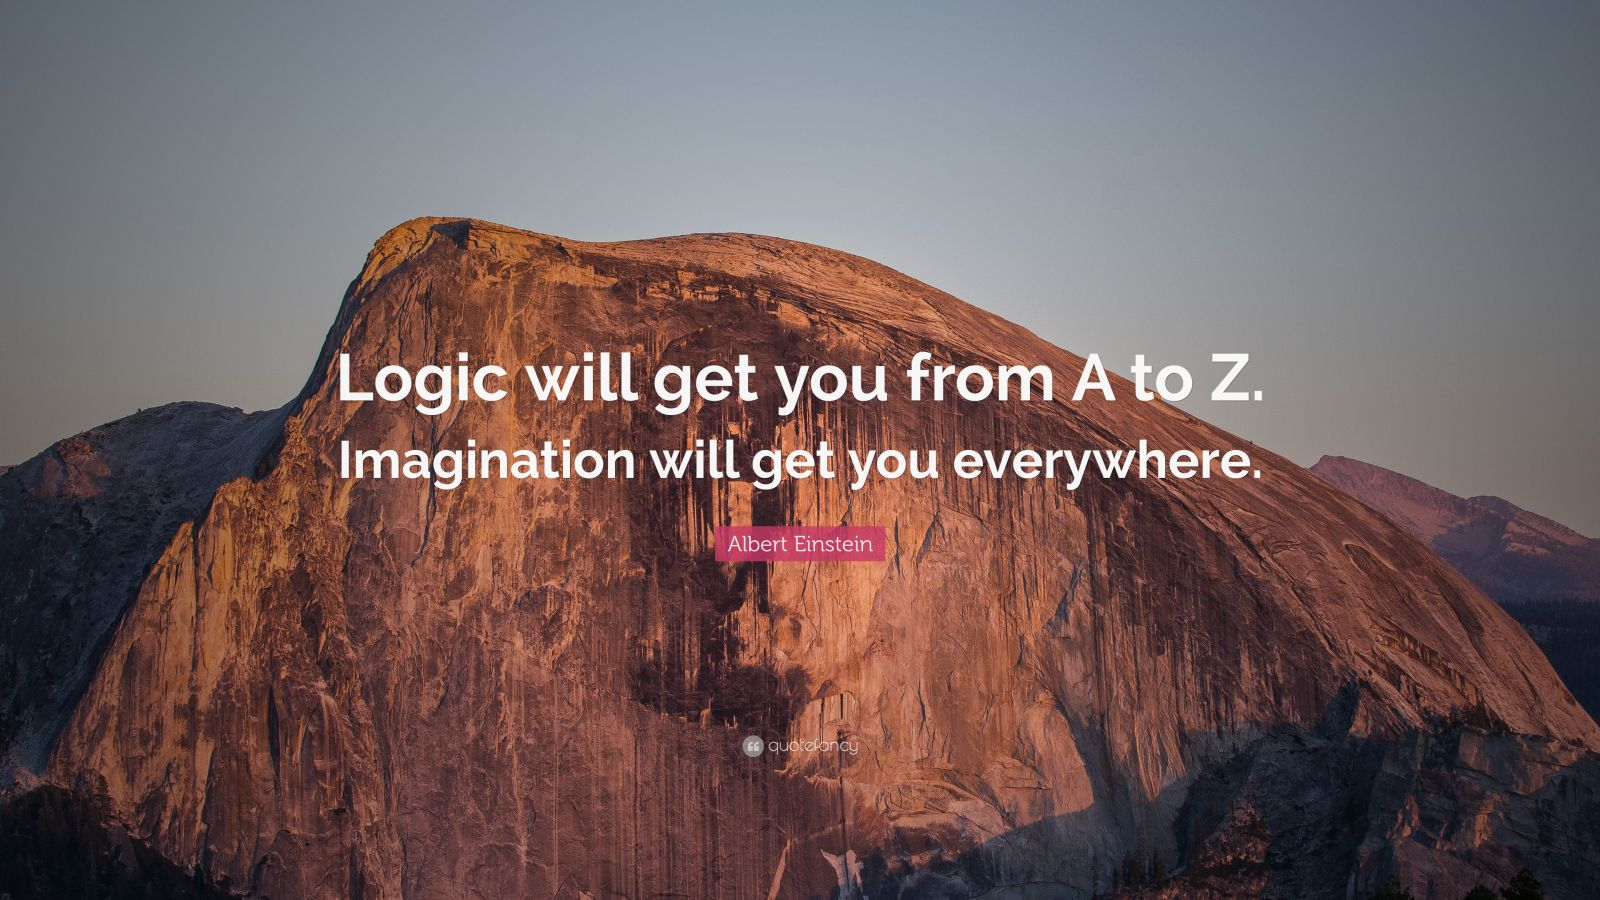 Inspiring Quotes With Wallpapers Albert Einstein Quote Logic Will Get You From A To Z